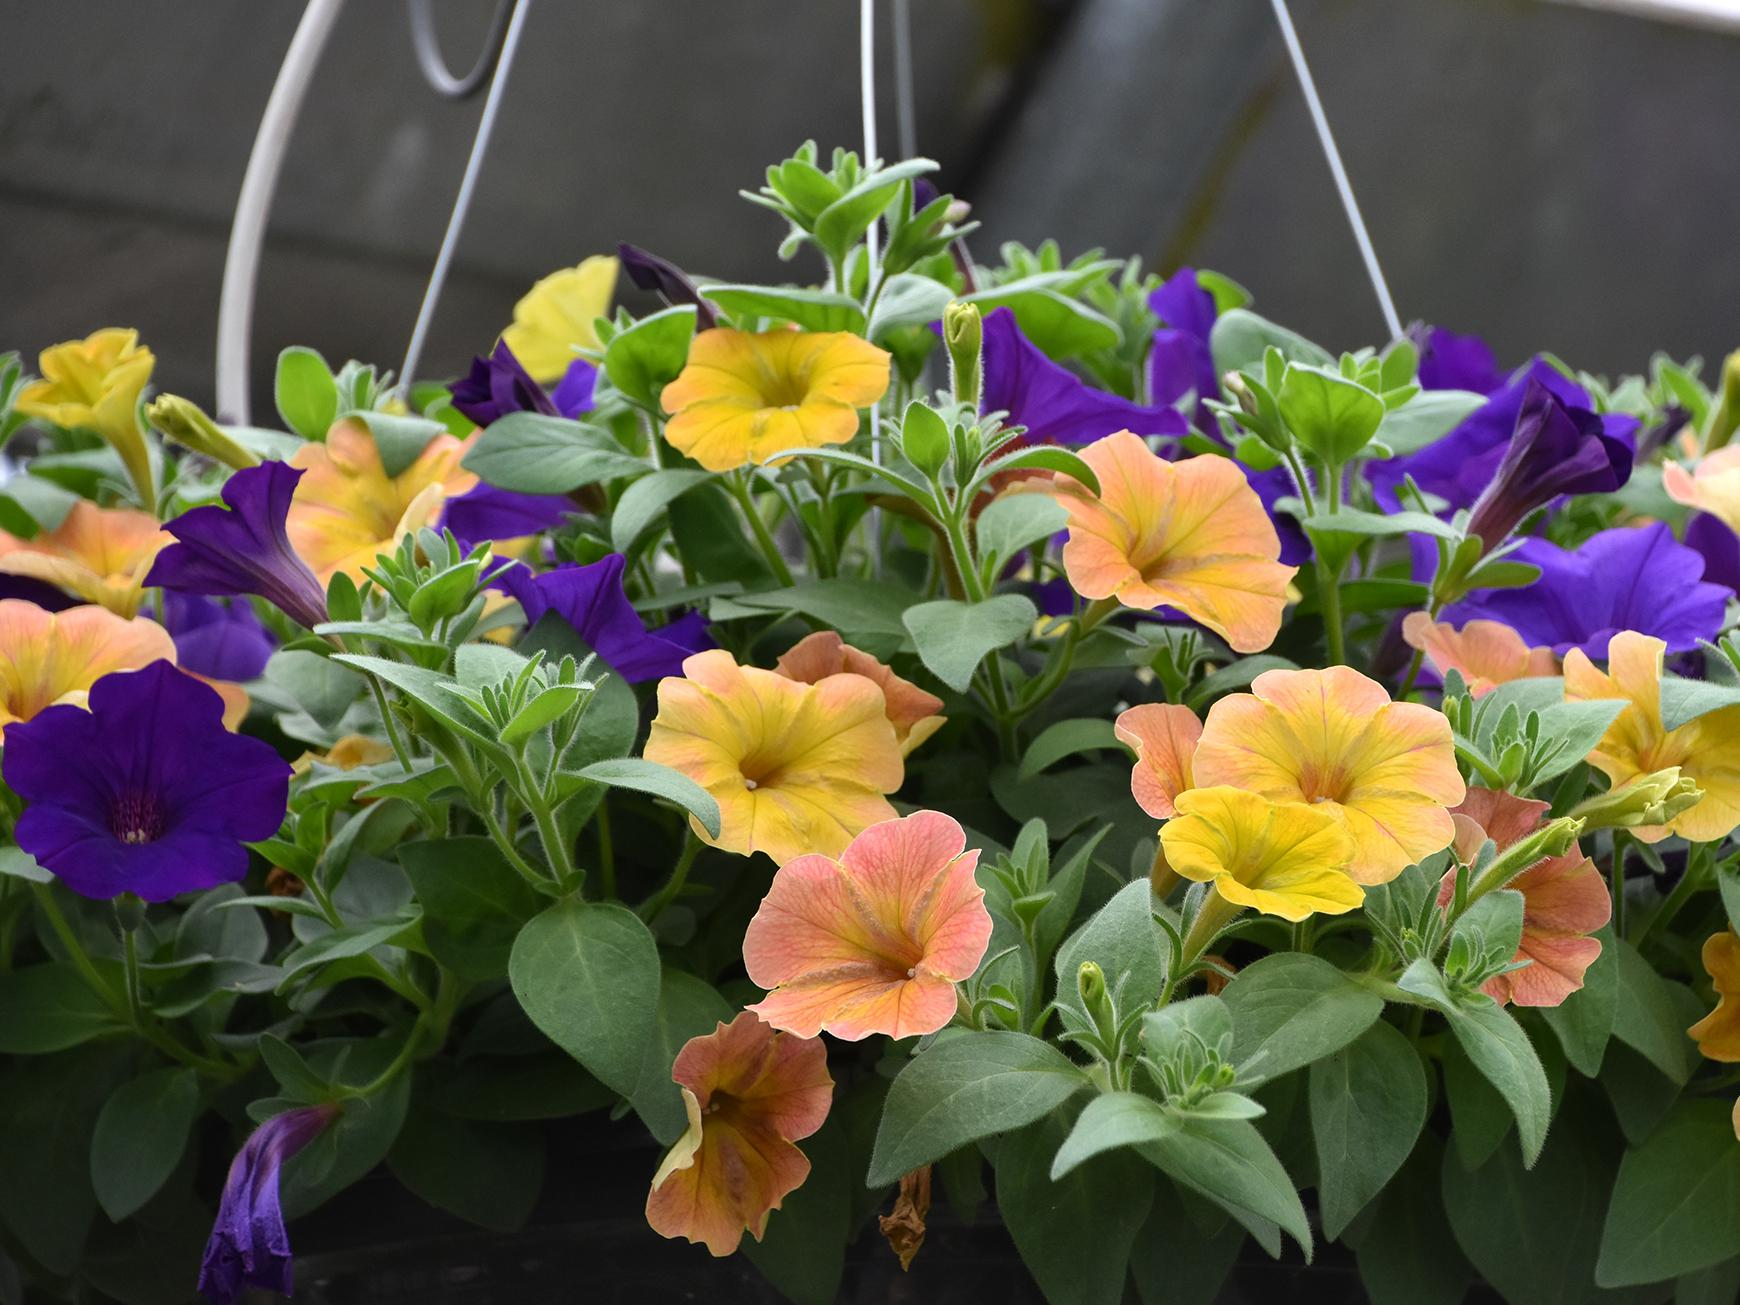 Supertunia Royal Velvet combines perfectly with Supertunia Honey for a beautiful hanging basket. (Photo by MSU Extension/Gary Bachman)